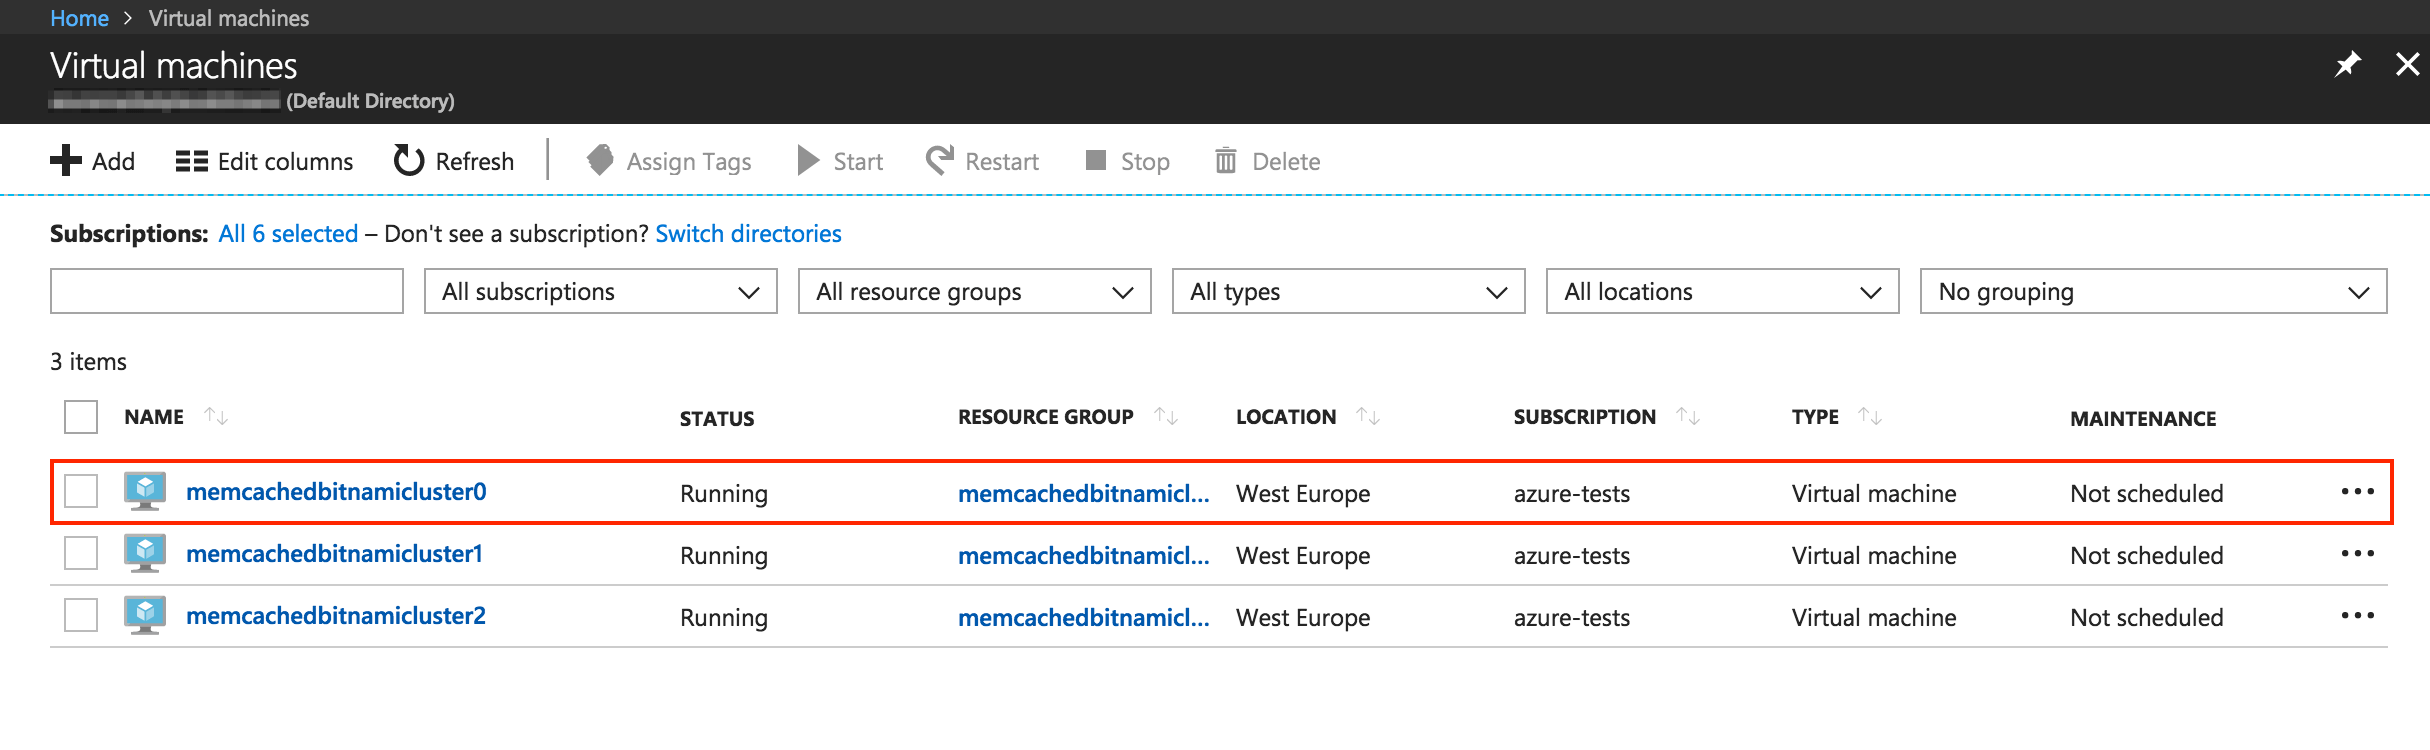 Connect to cluster virtual machines